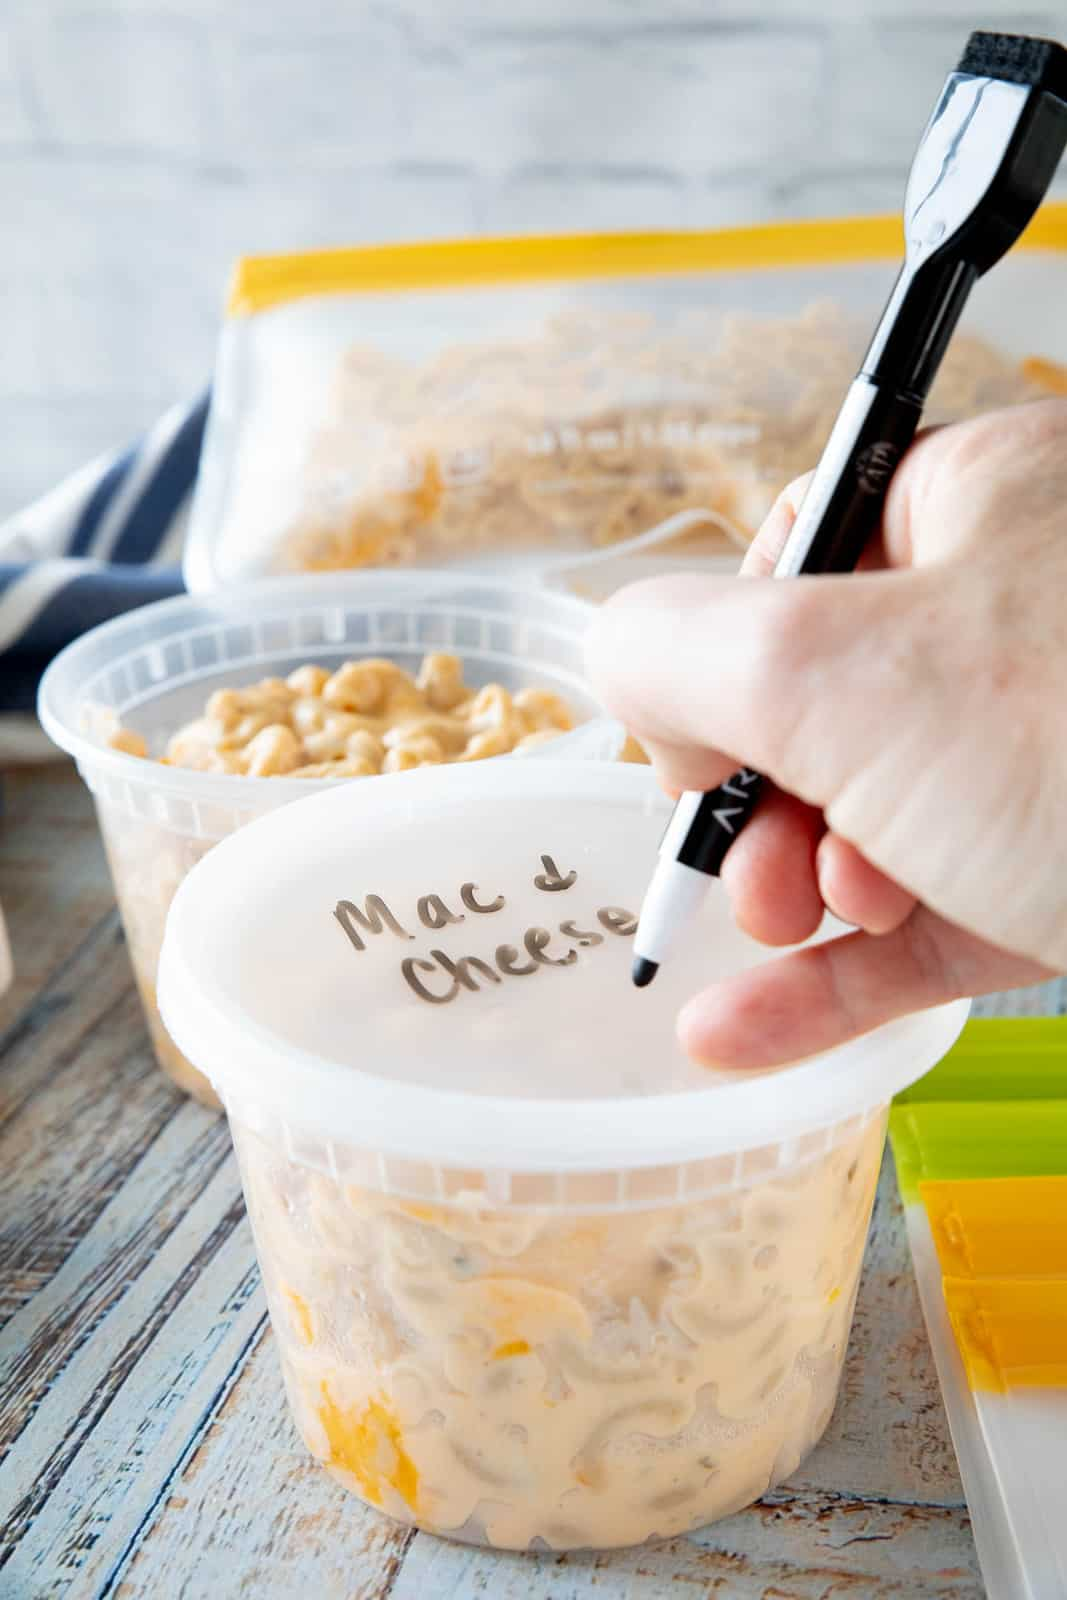 A hand writing Mac & cheese on top of a plastic lid that is on top of a plastic container filled with pasta.